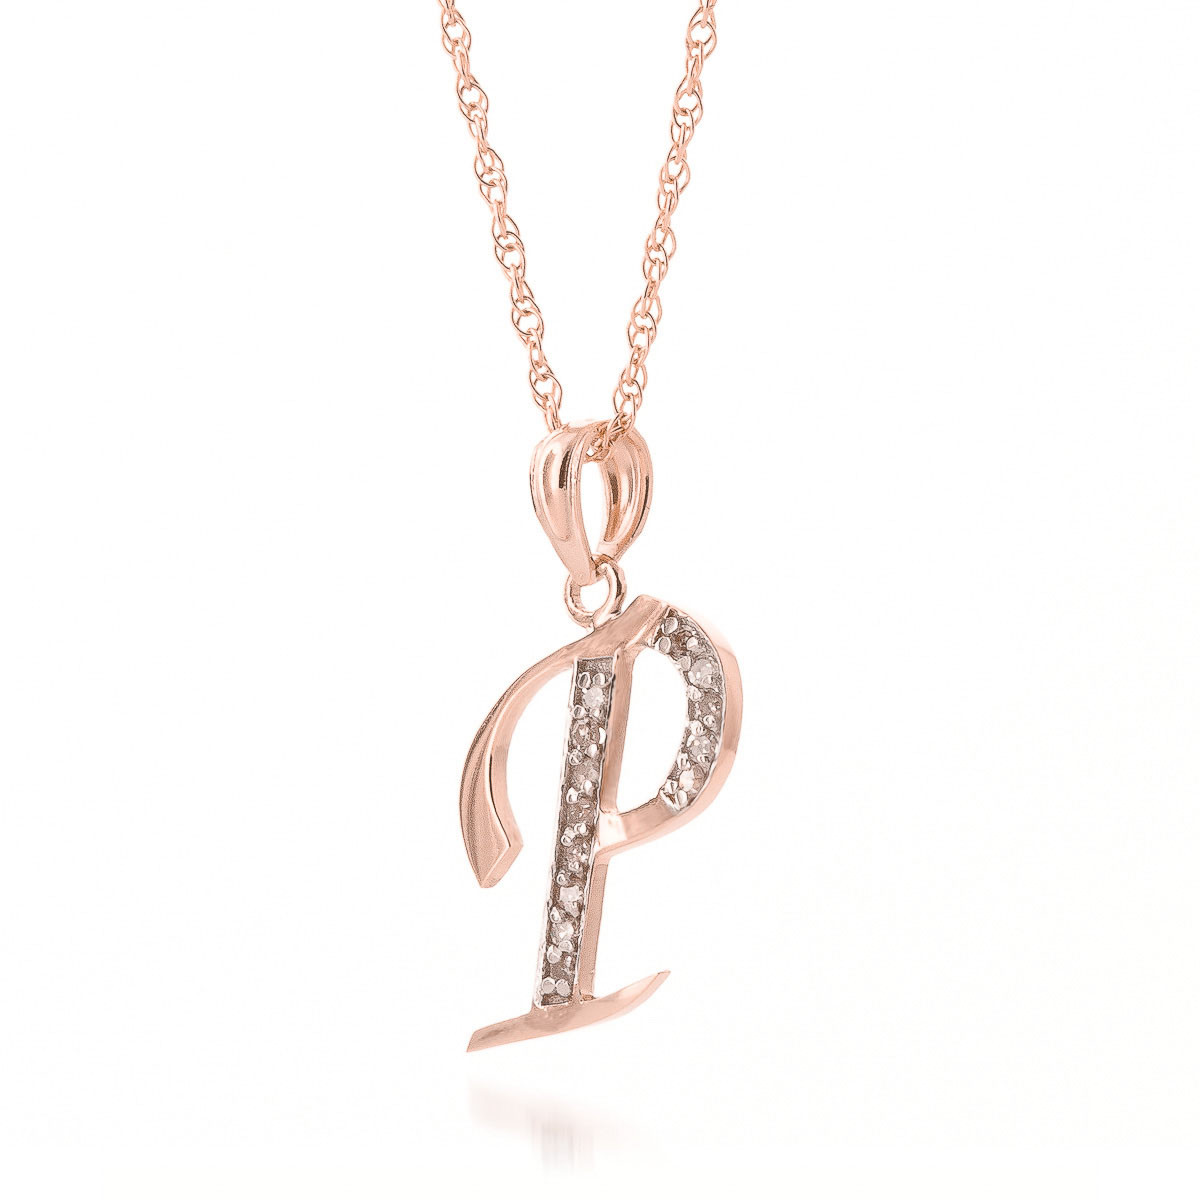 P Letter Images.Diamond Letter Initial P Pendant Necklace In 9ct Rose Gold